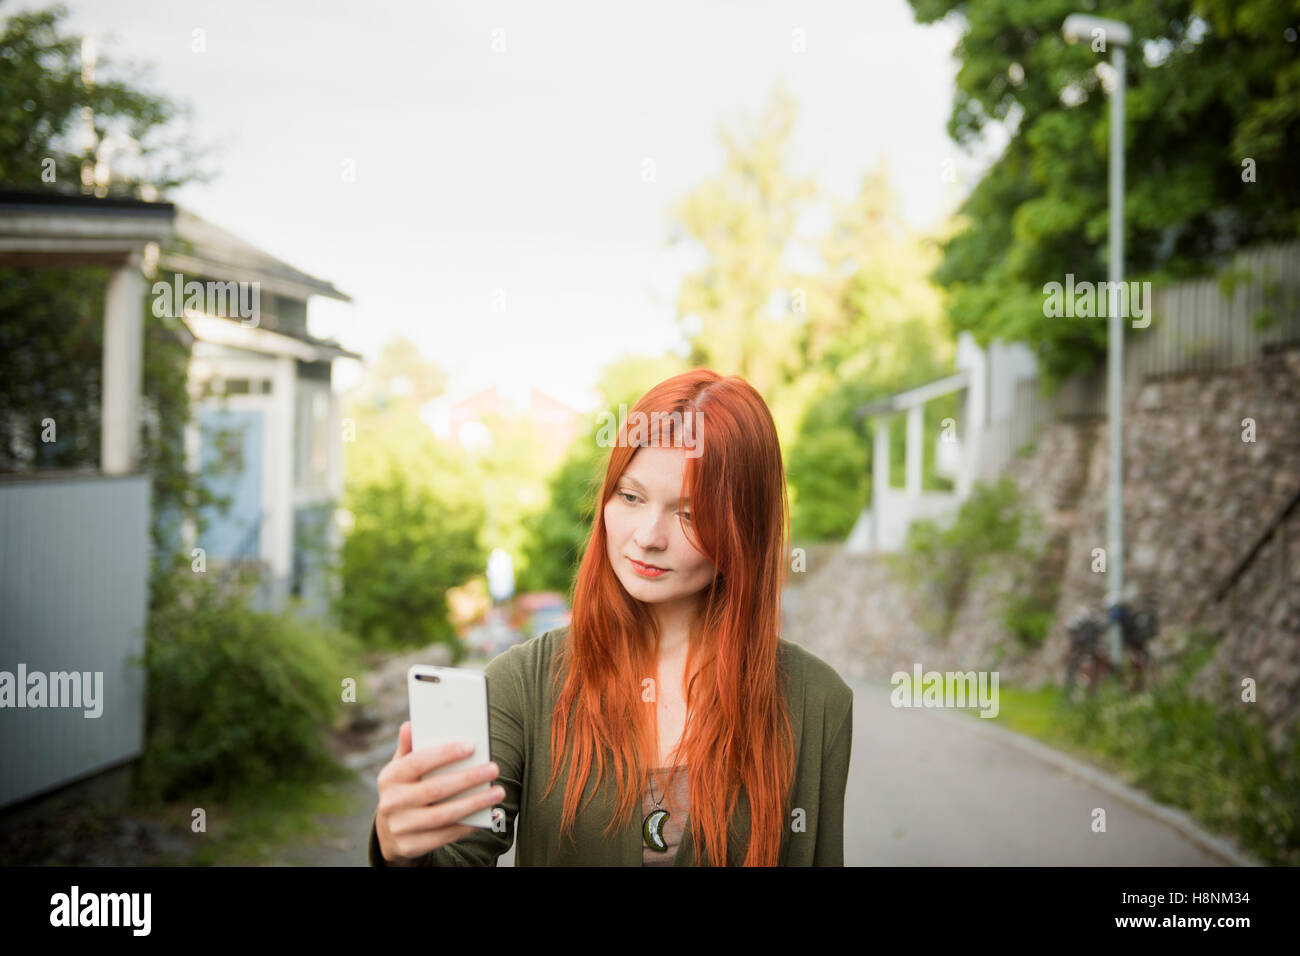 Redhaired woman using phone - Stock Image